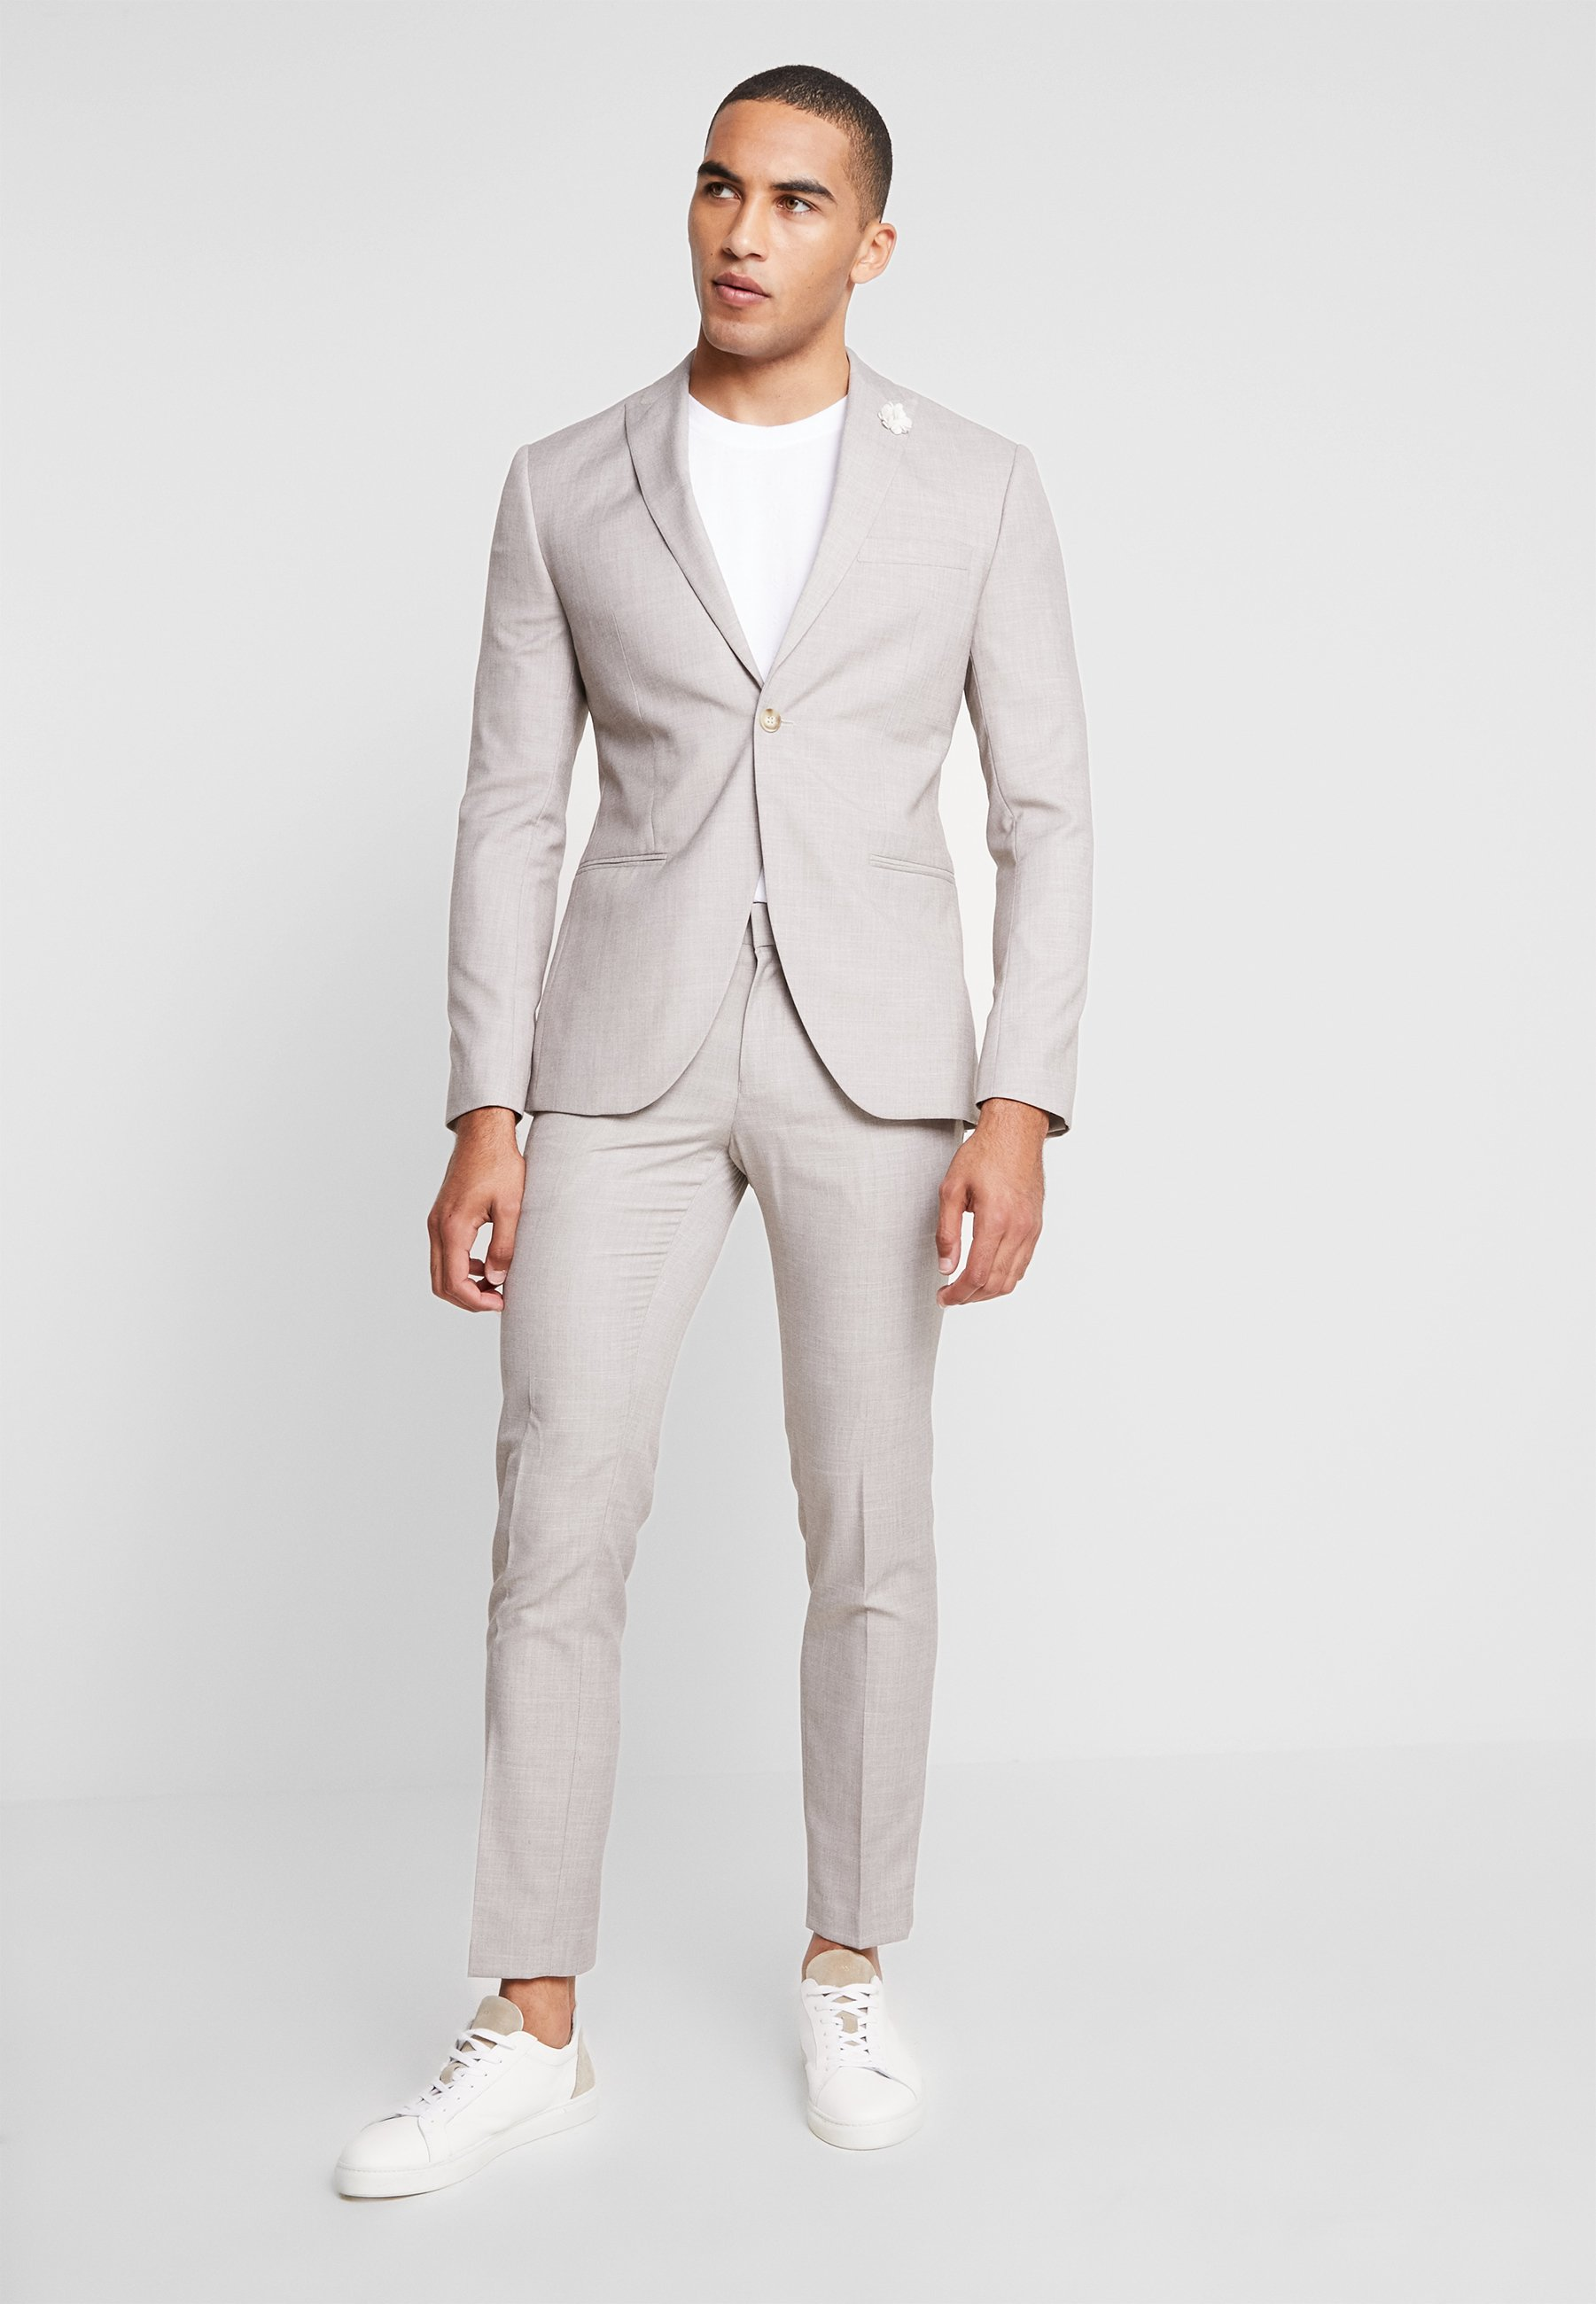 Wedding Suit Dewhirst Light Beige Isaac NeutralCostume 0wmNnv8